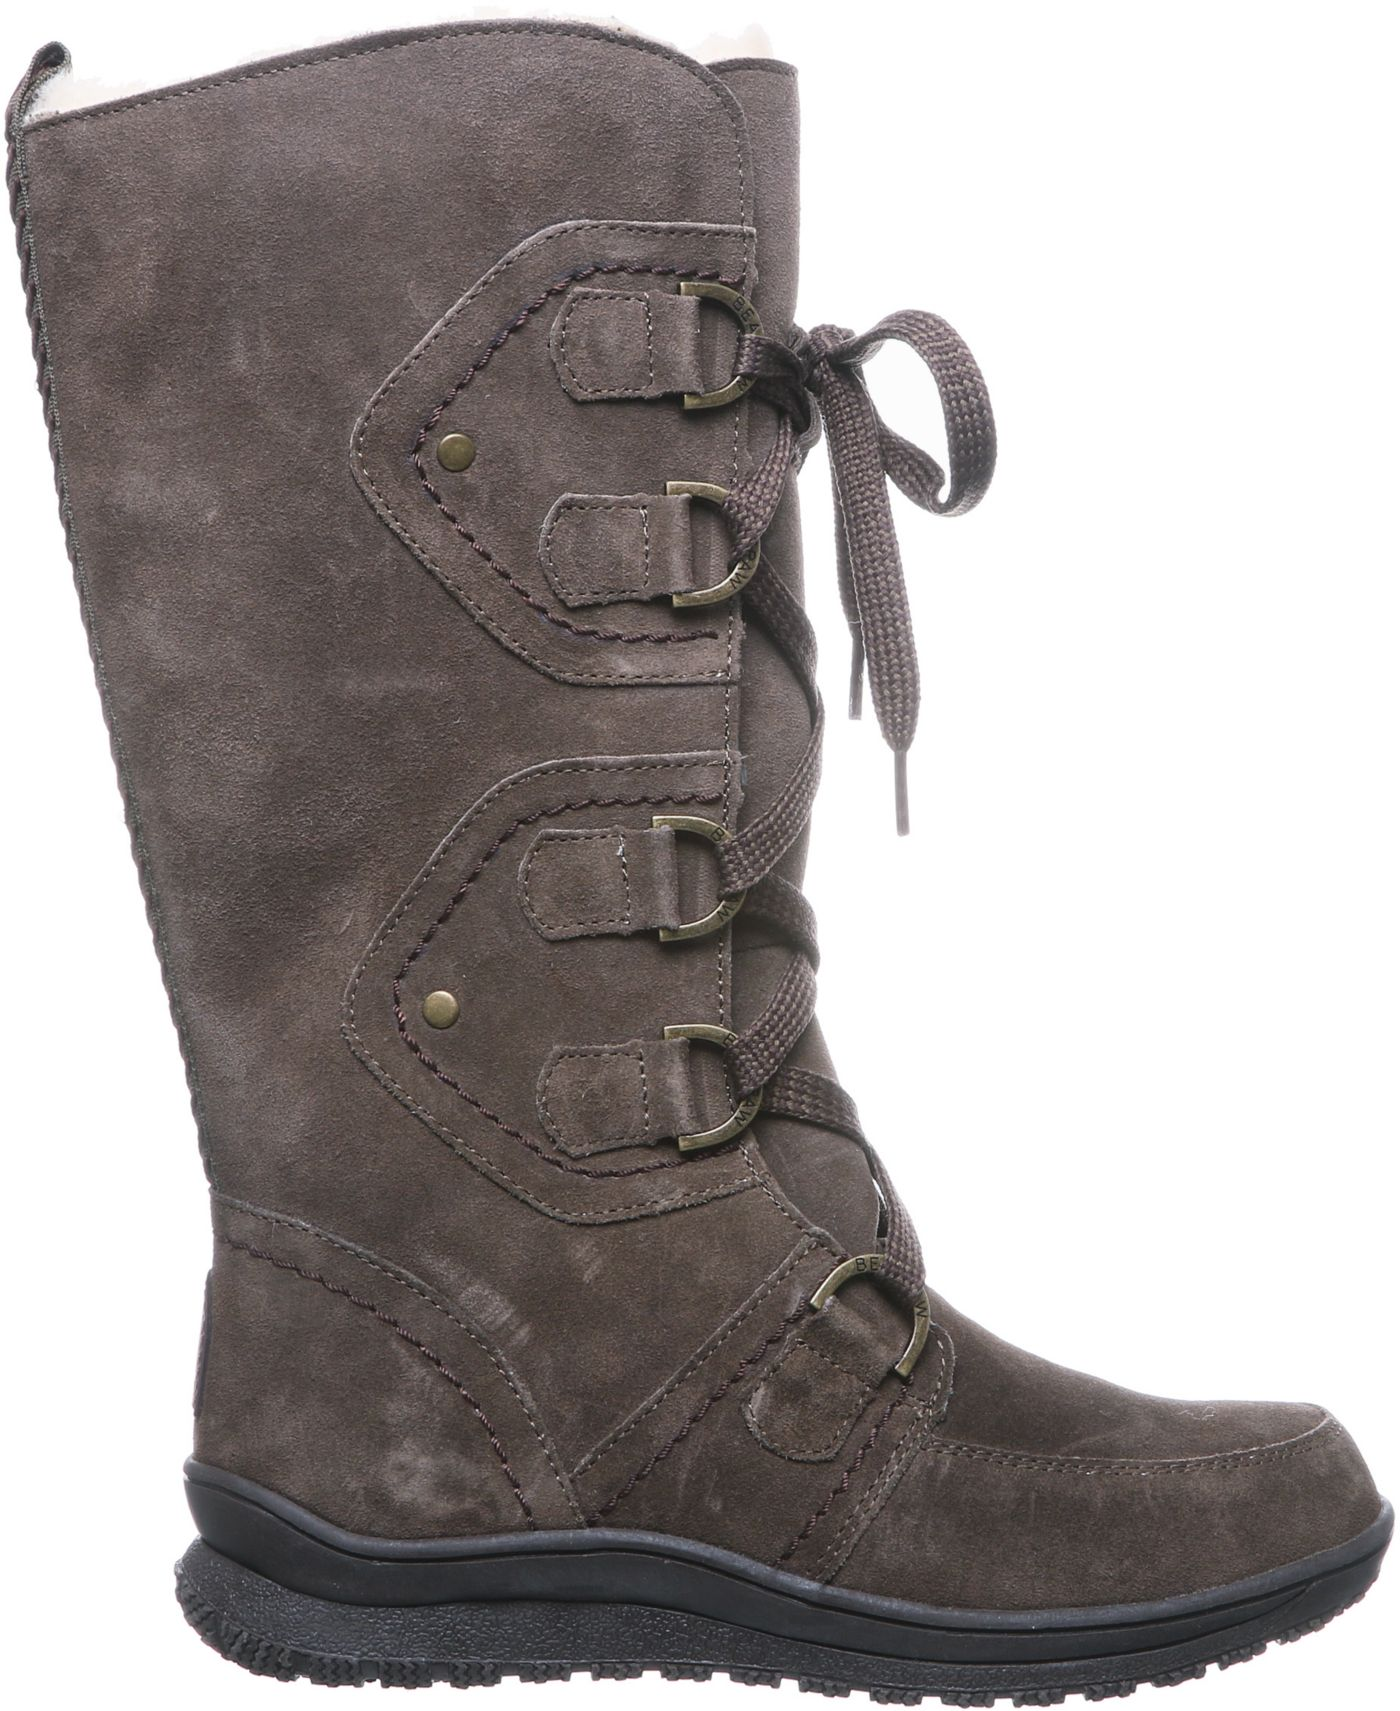 BEARPAW Women's Justice Winter Boots